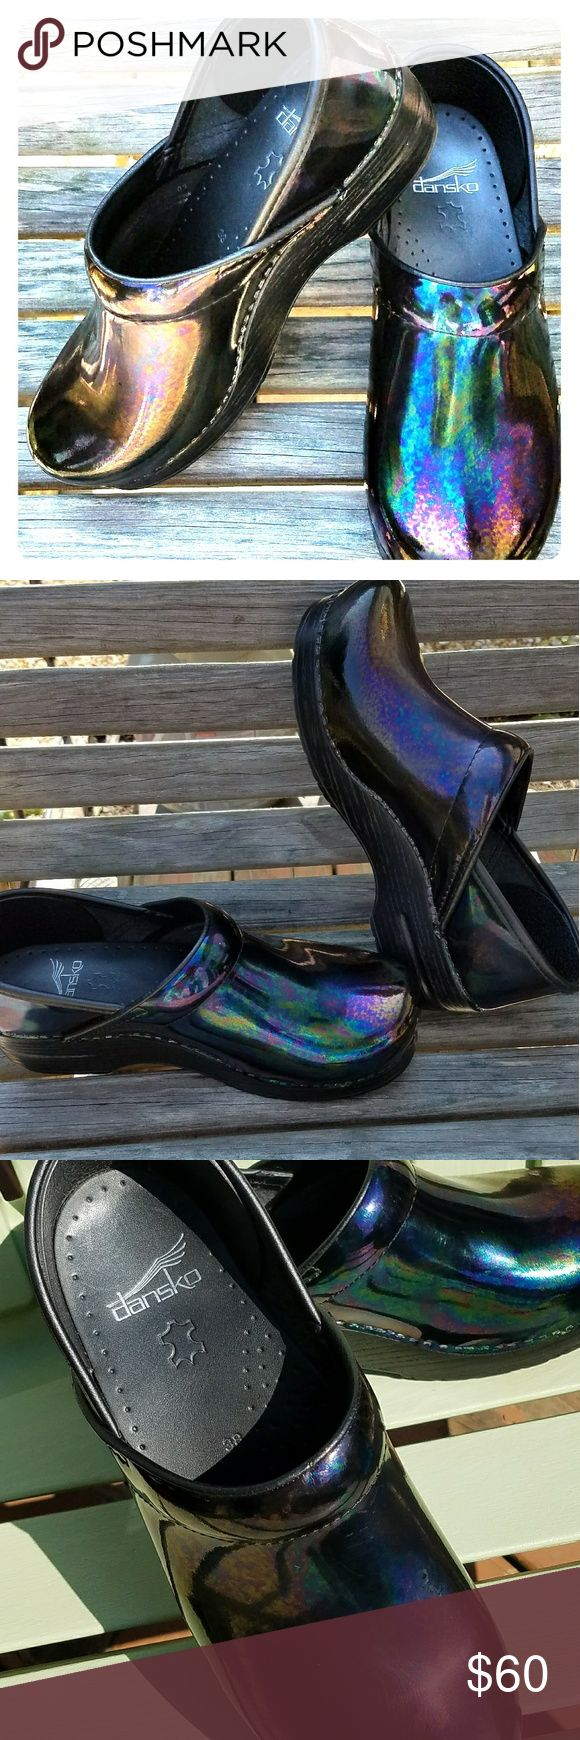 Dansko Oil Slick Professional Nursing Clogs/ Mules Excellent condition. Any slight imperfections are shown in the pictures. Worn twice. Shimmers in the light to create an array of purple, green, and blue colors. Dansko Shoes Mules & Clogs